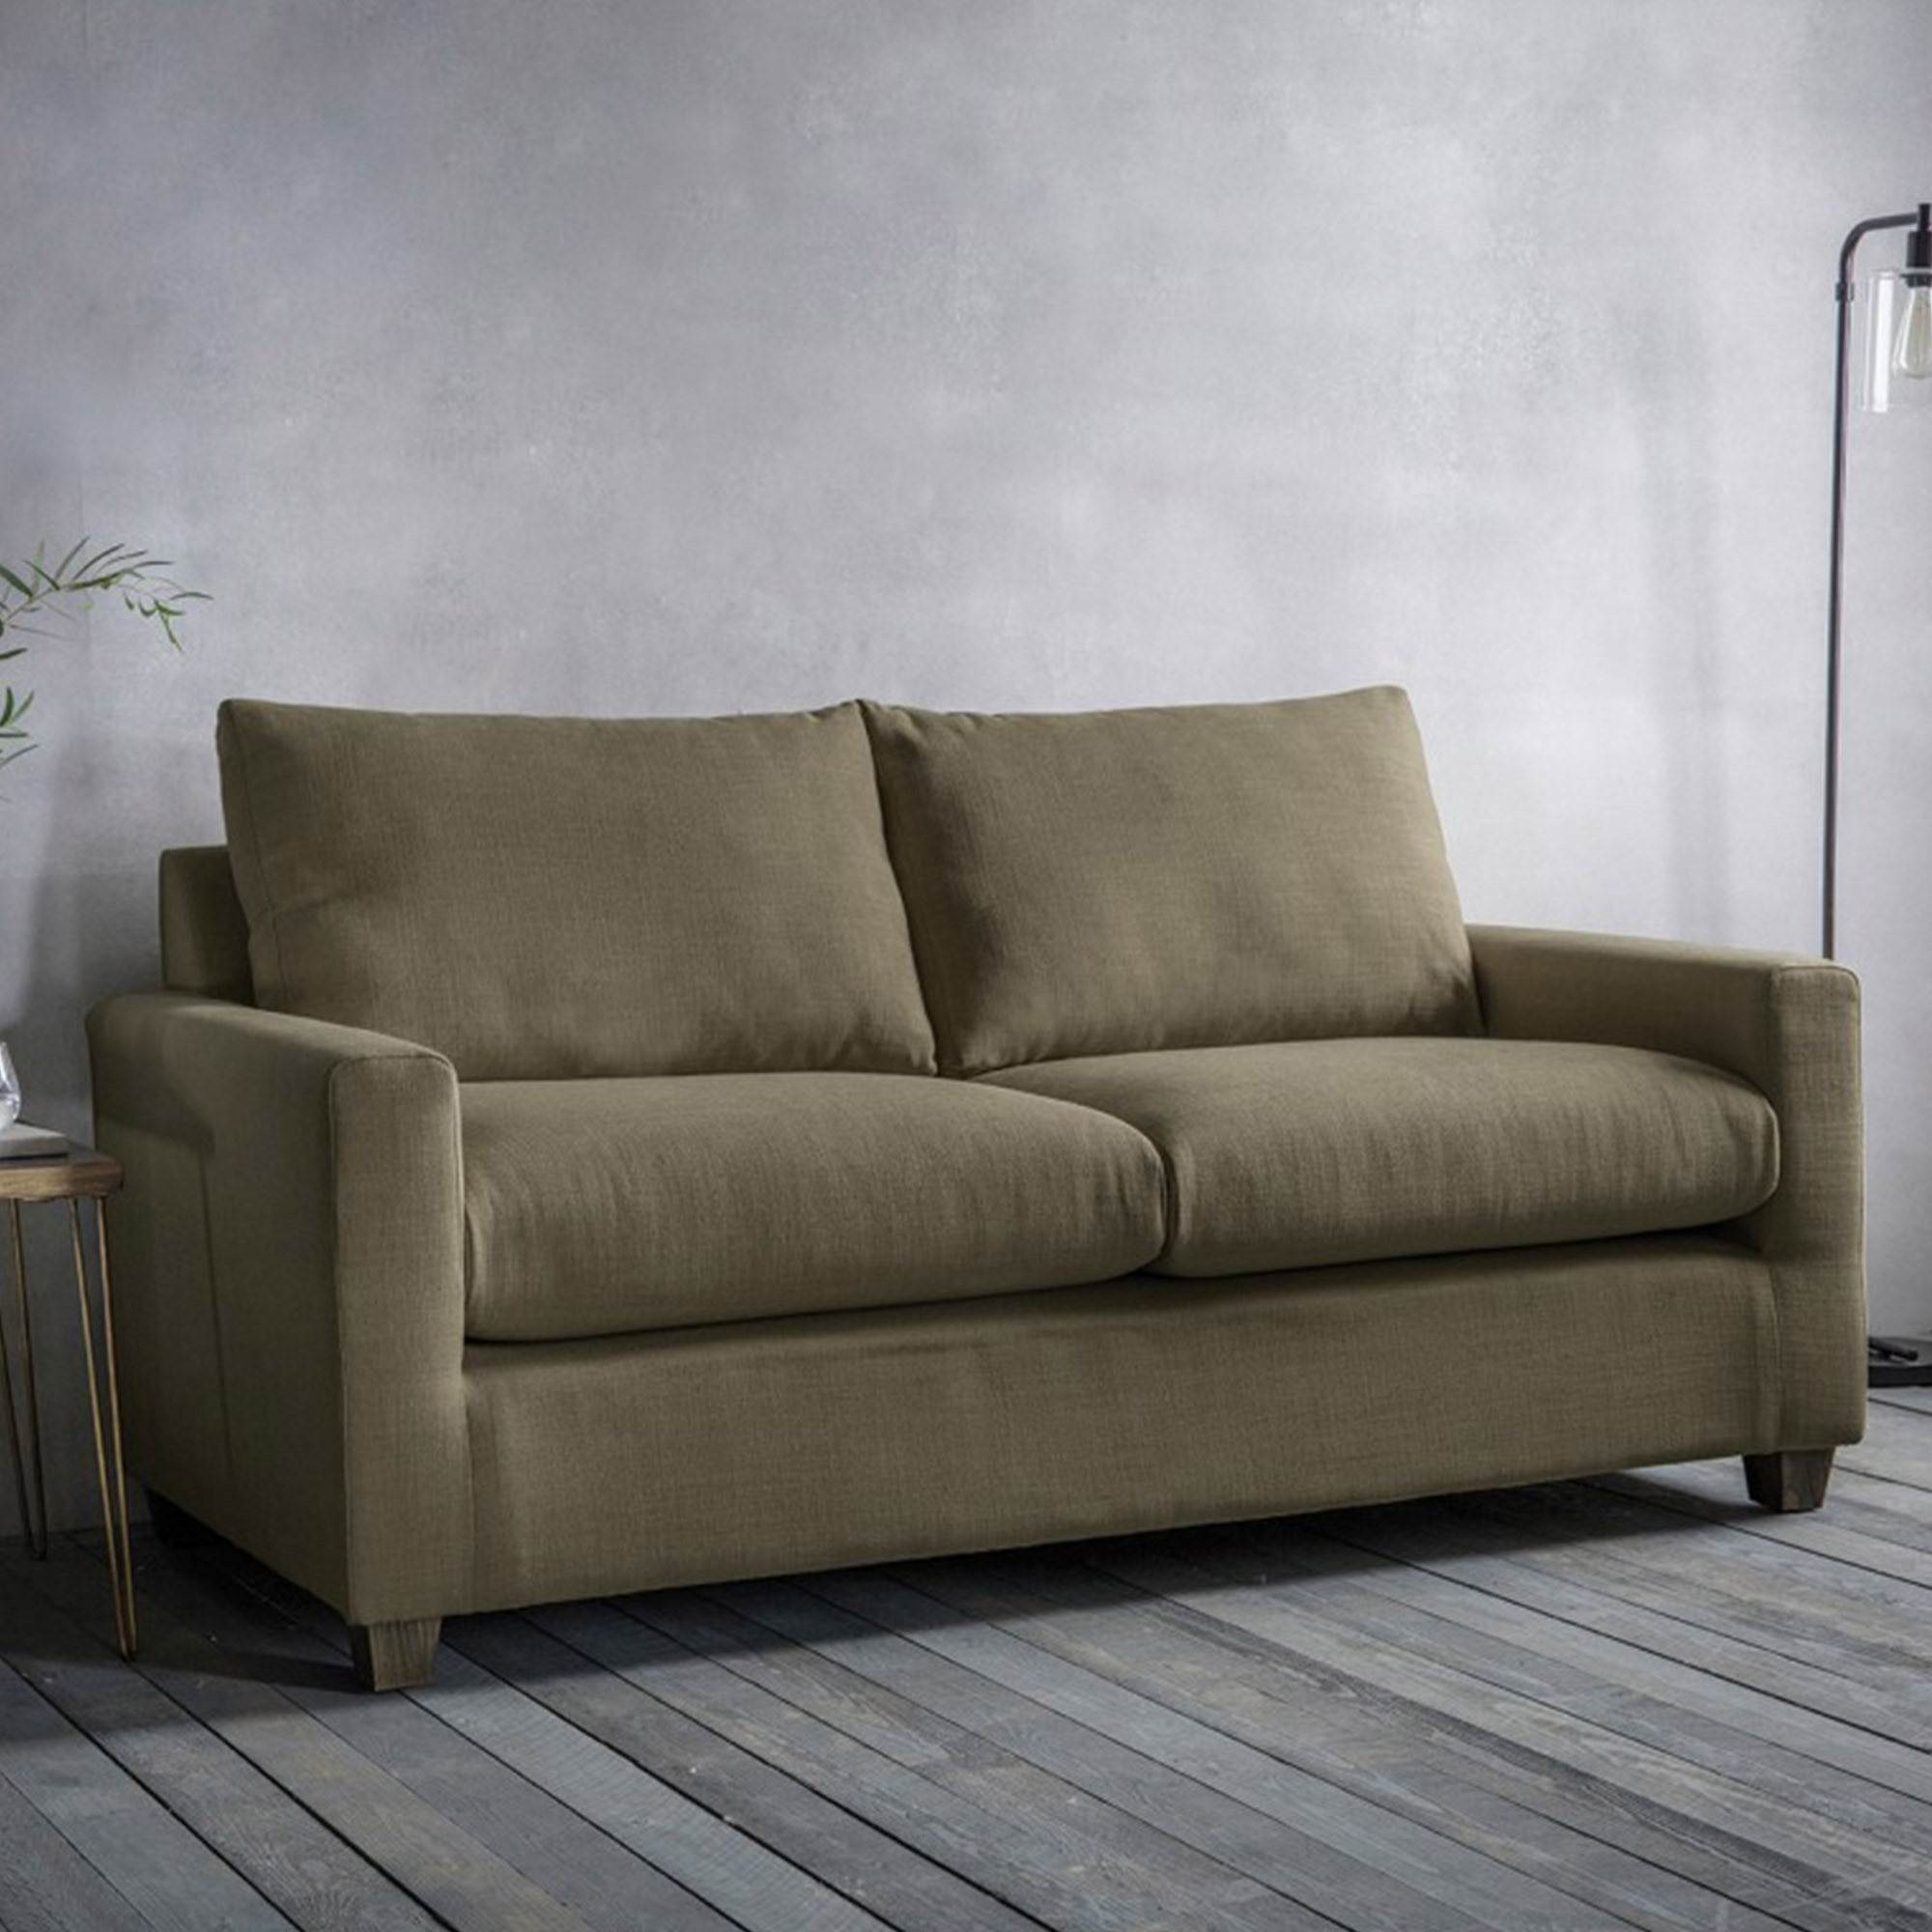 Field Army Stratford Sofa Seating Online At Homesdirect365 Throughout Stratford Sofas (Image 5 of 15)